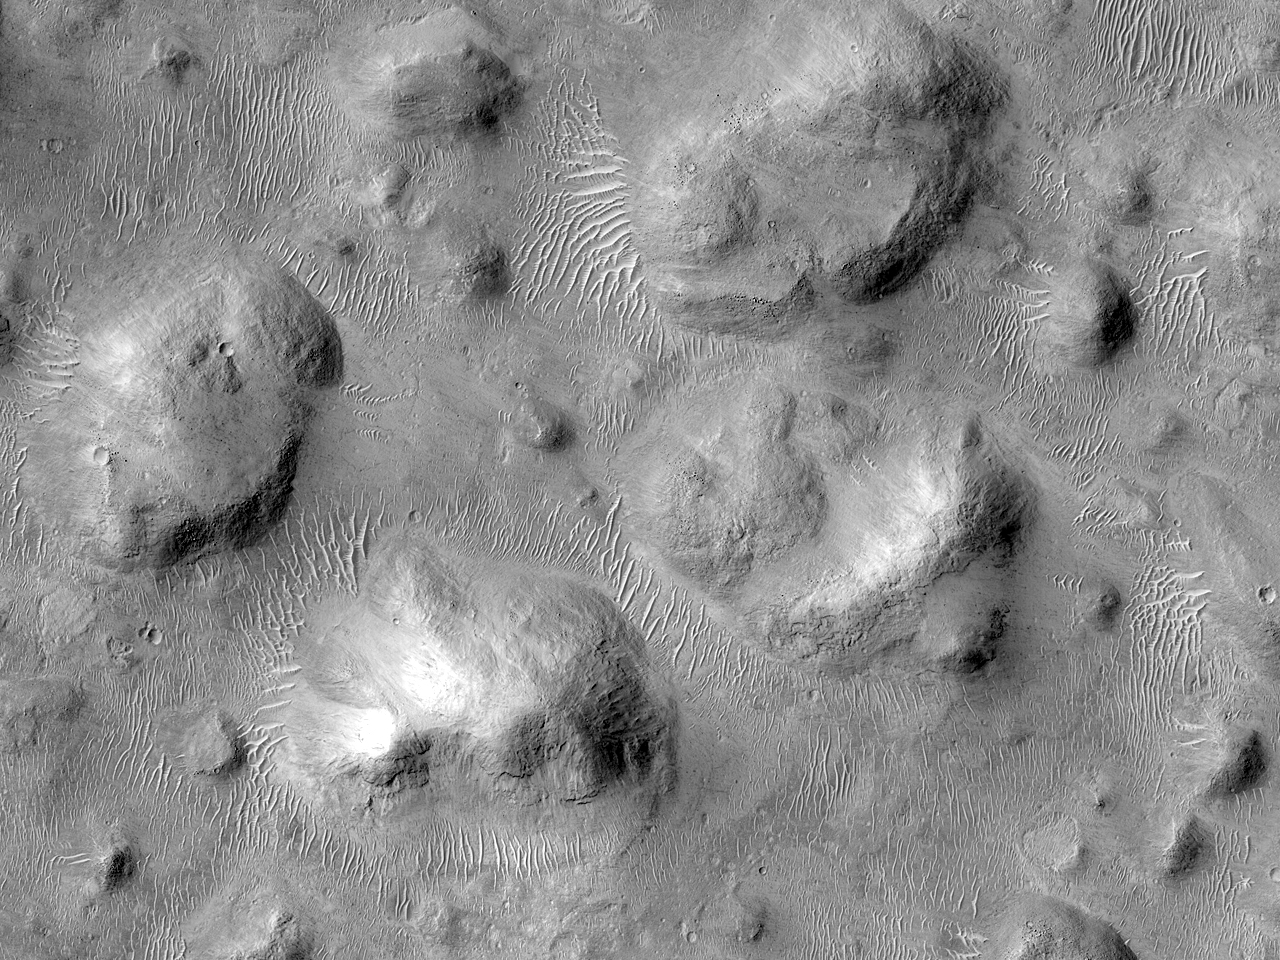 Mini-Chaos Terrain in Filled Crater